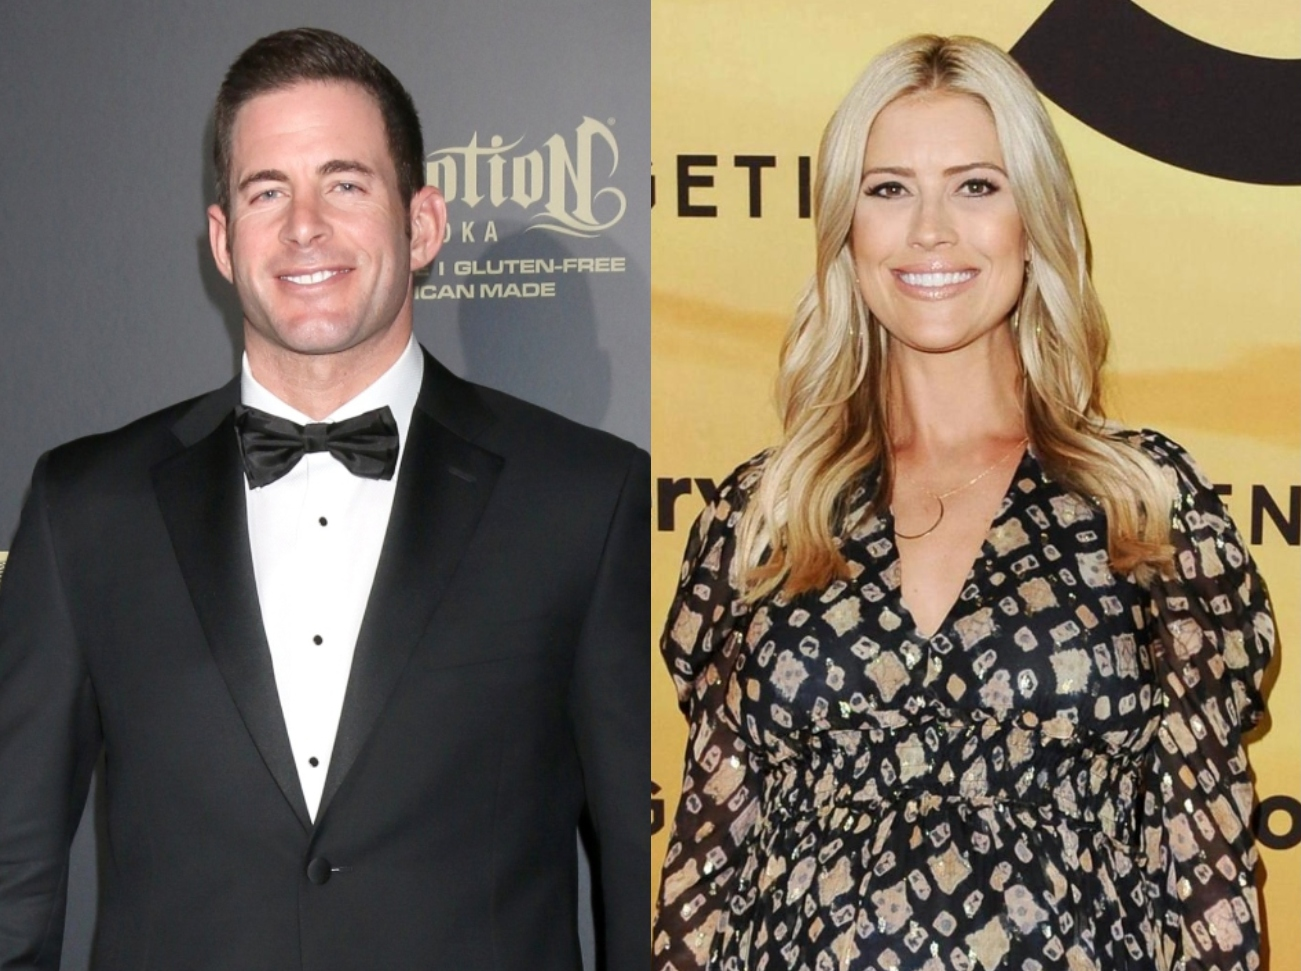 """Tarek El Moussa Breaks Silence On Fight With Ex Christina Haack On Flip Or Flop Set, Admits It """"Sucked For Everyone"""""""